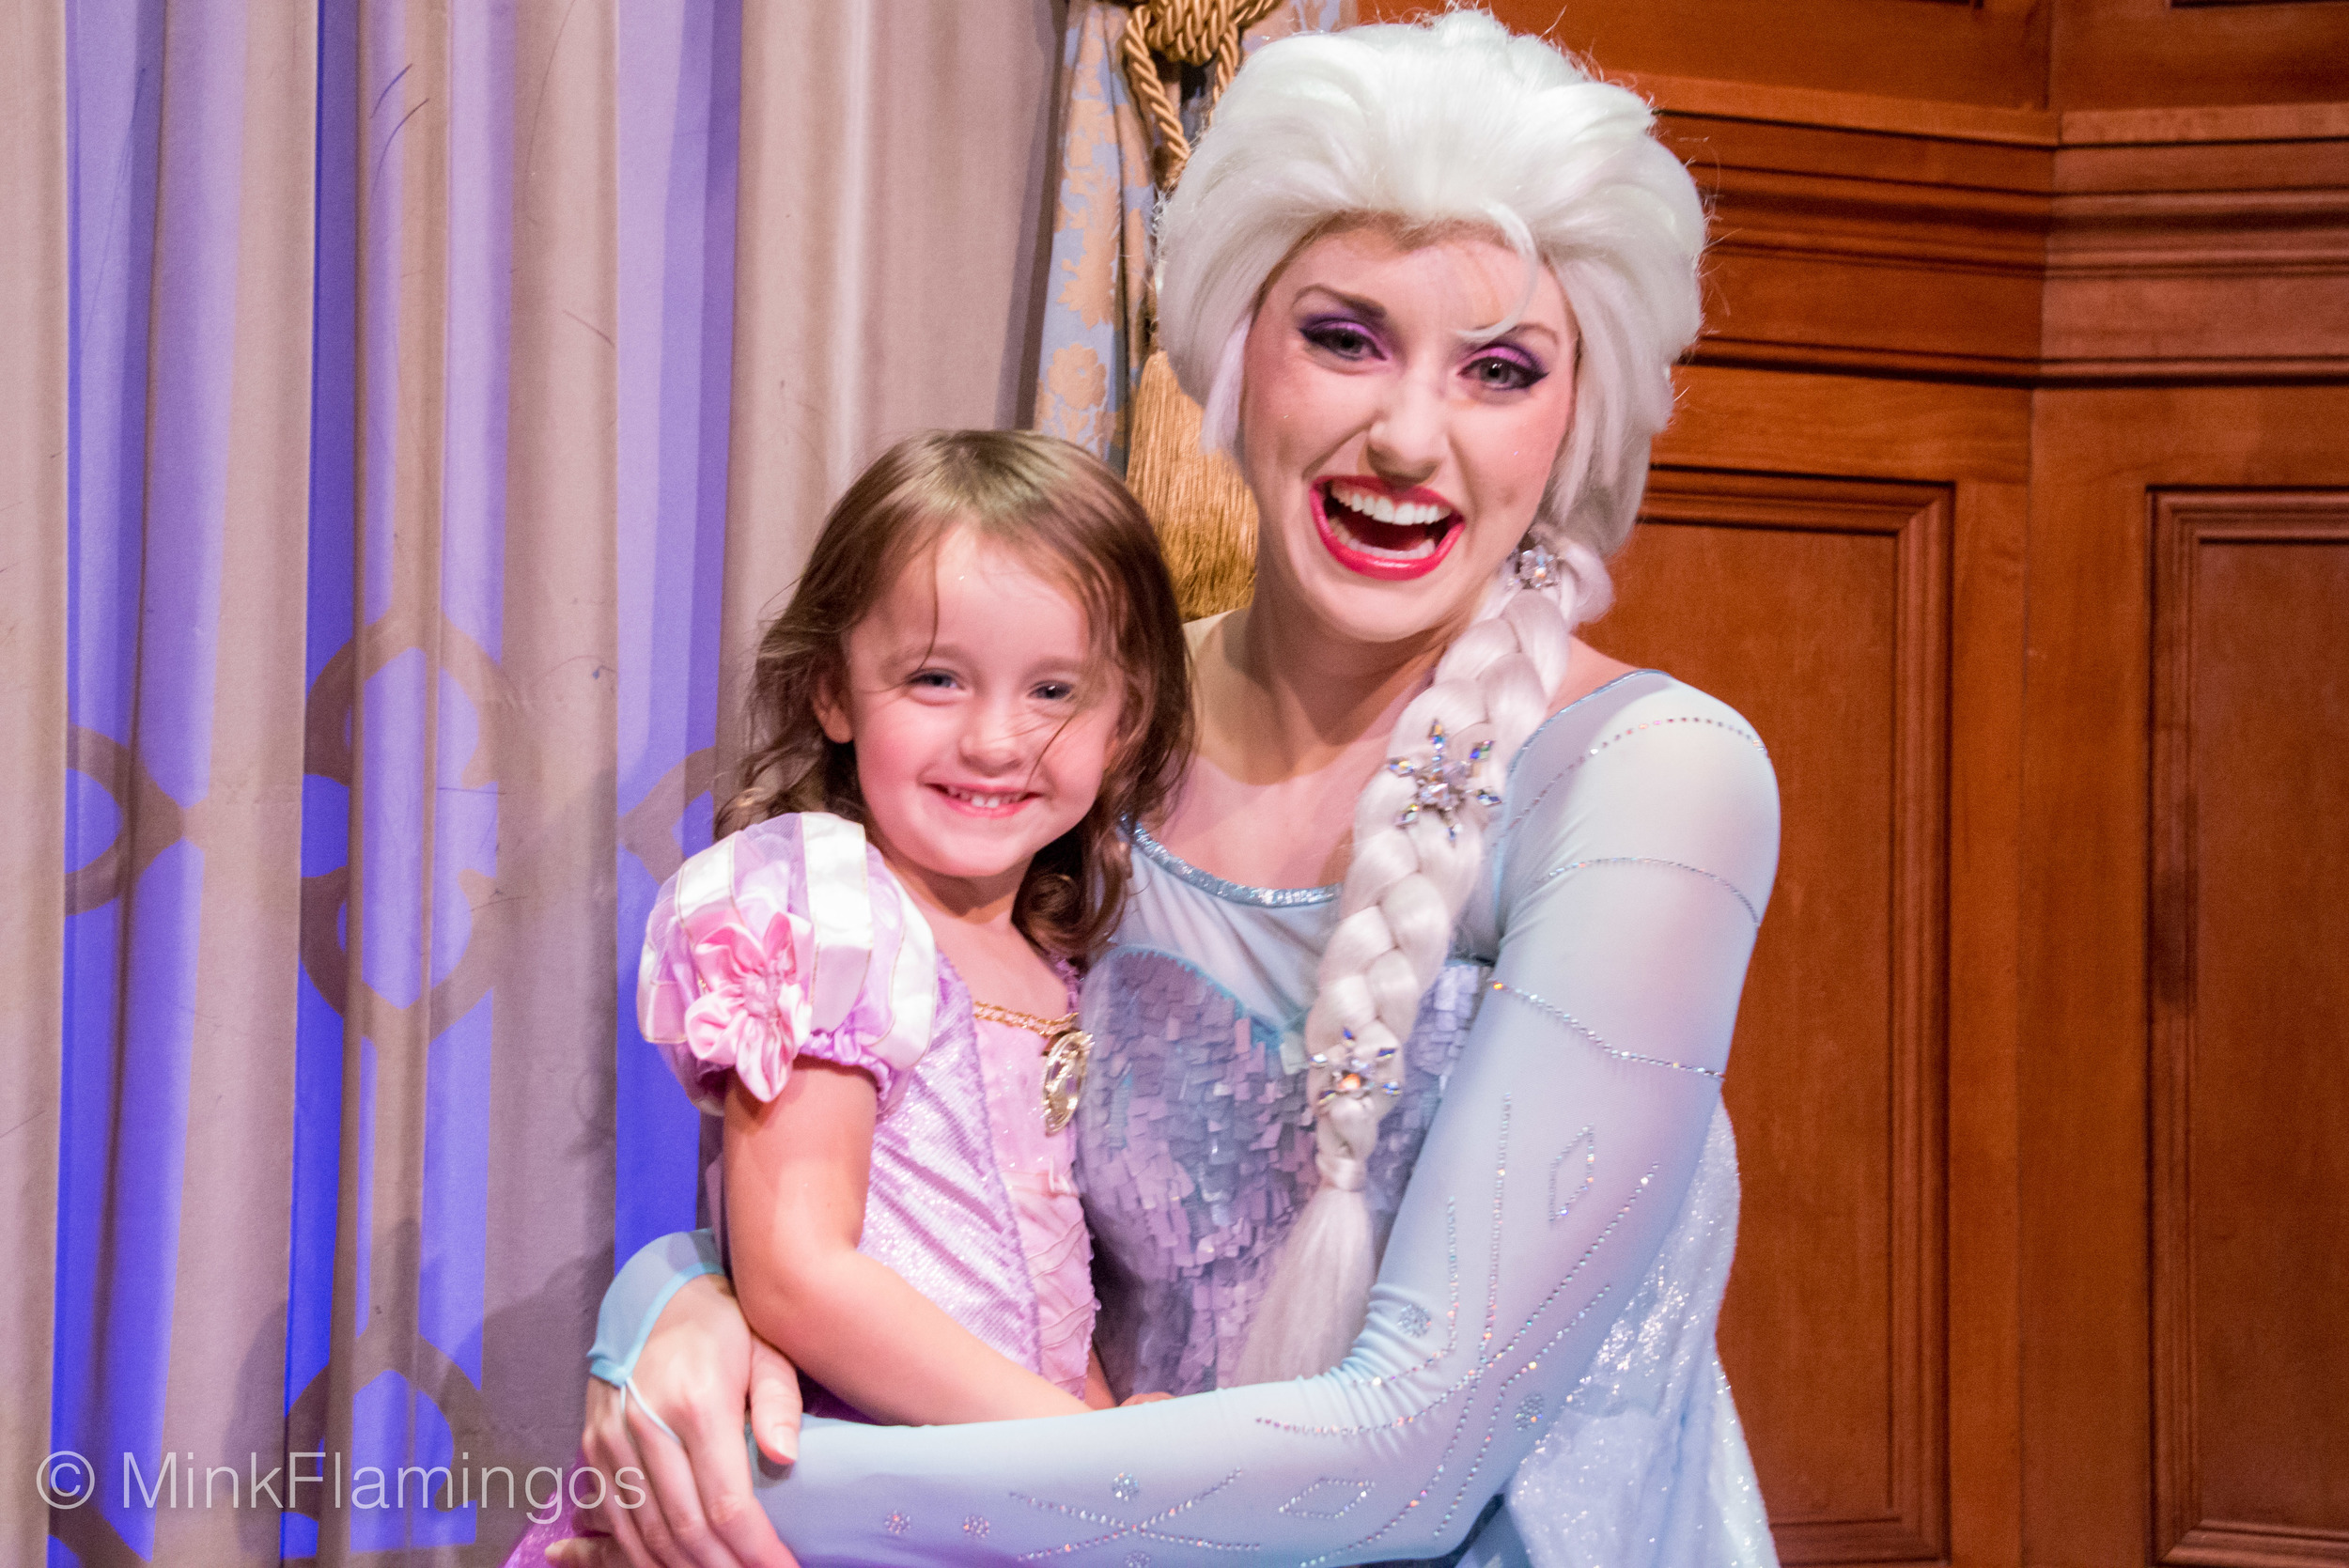 D and I love making the Ice Queen laugh